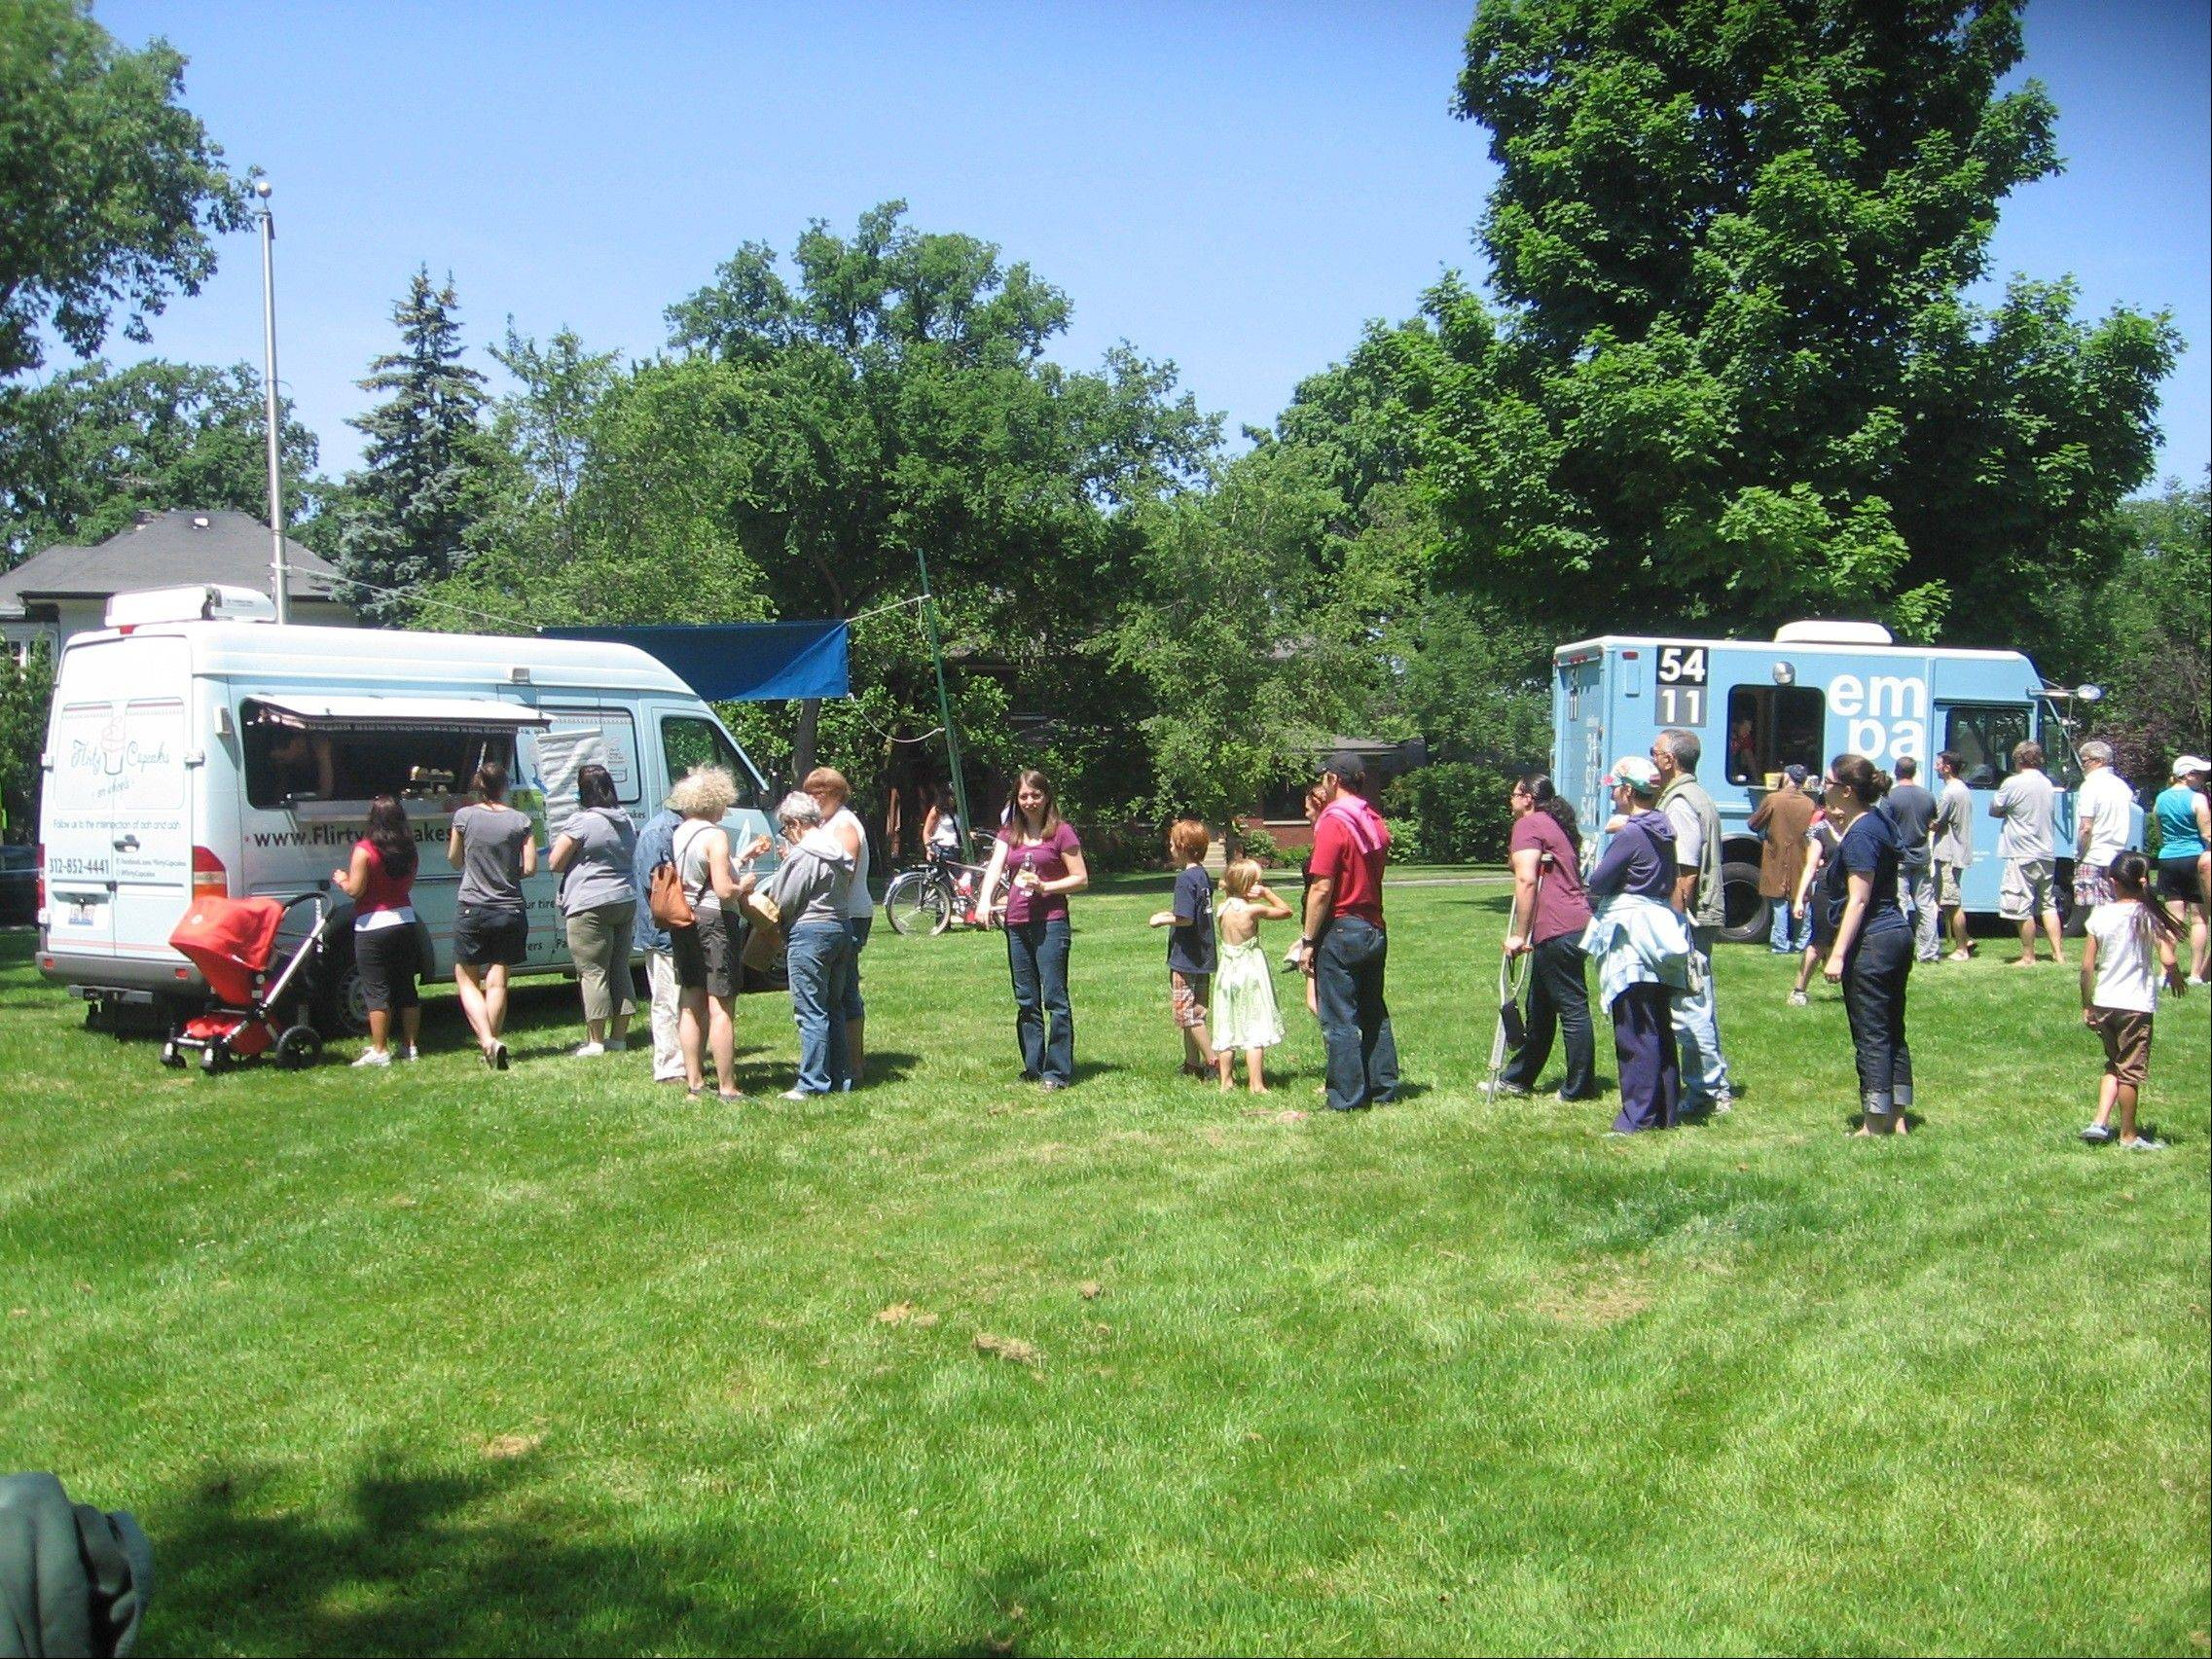 When in the suburbs, food trucks tend to stick to crowded festivals in order to get the traffic they need.